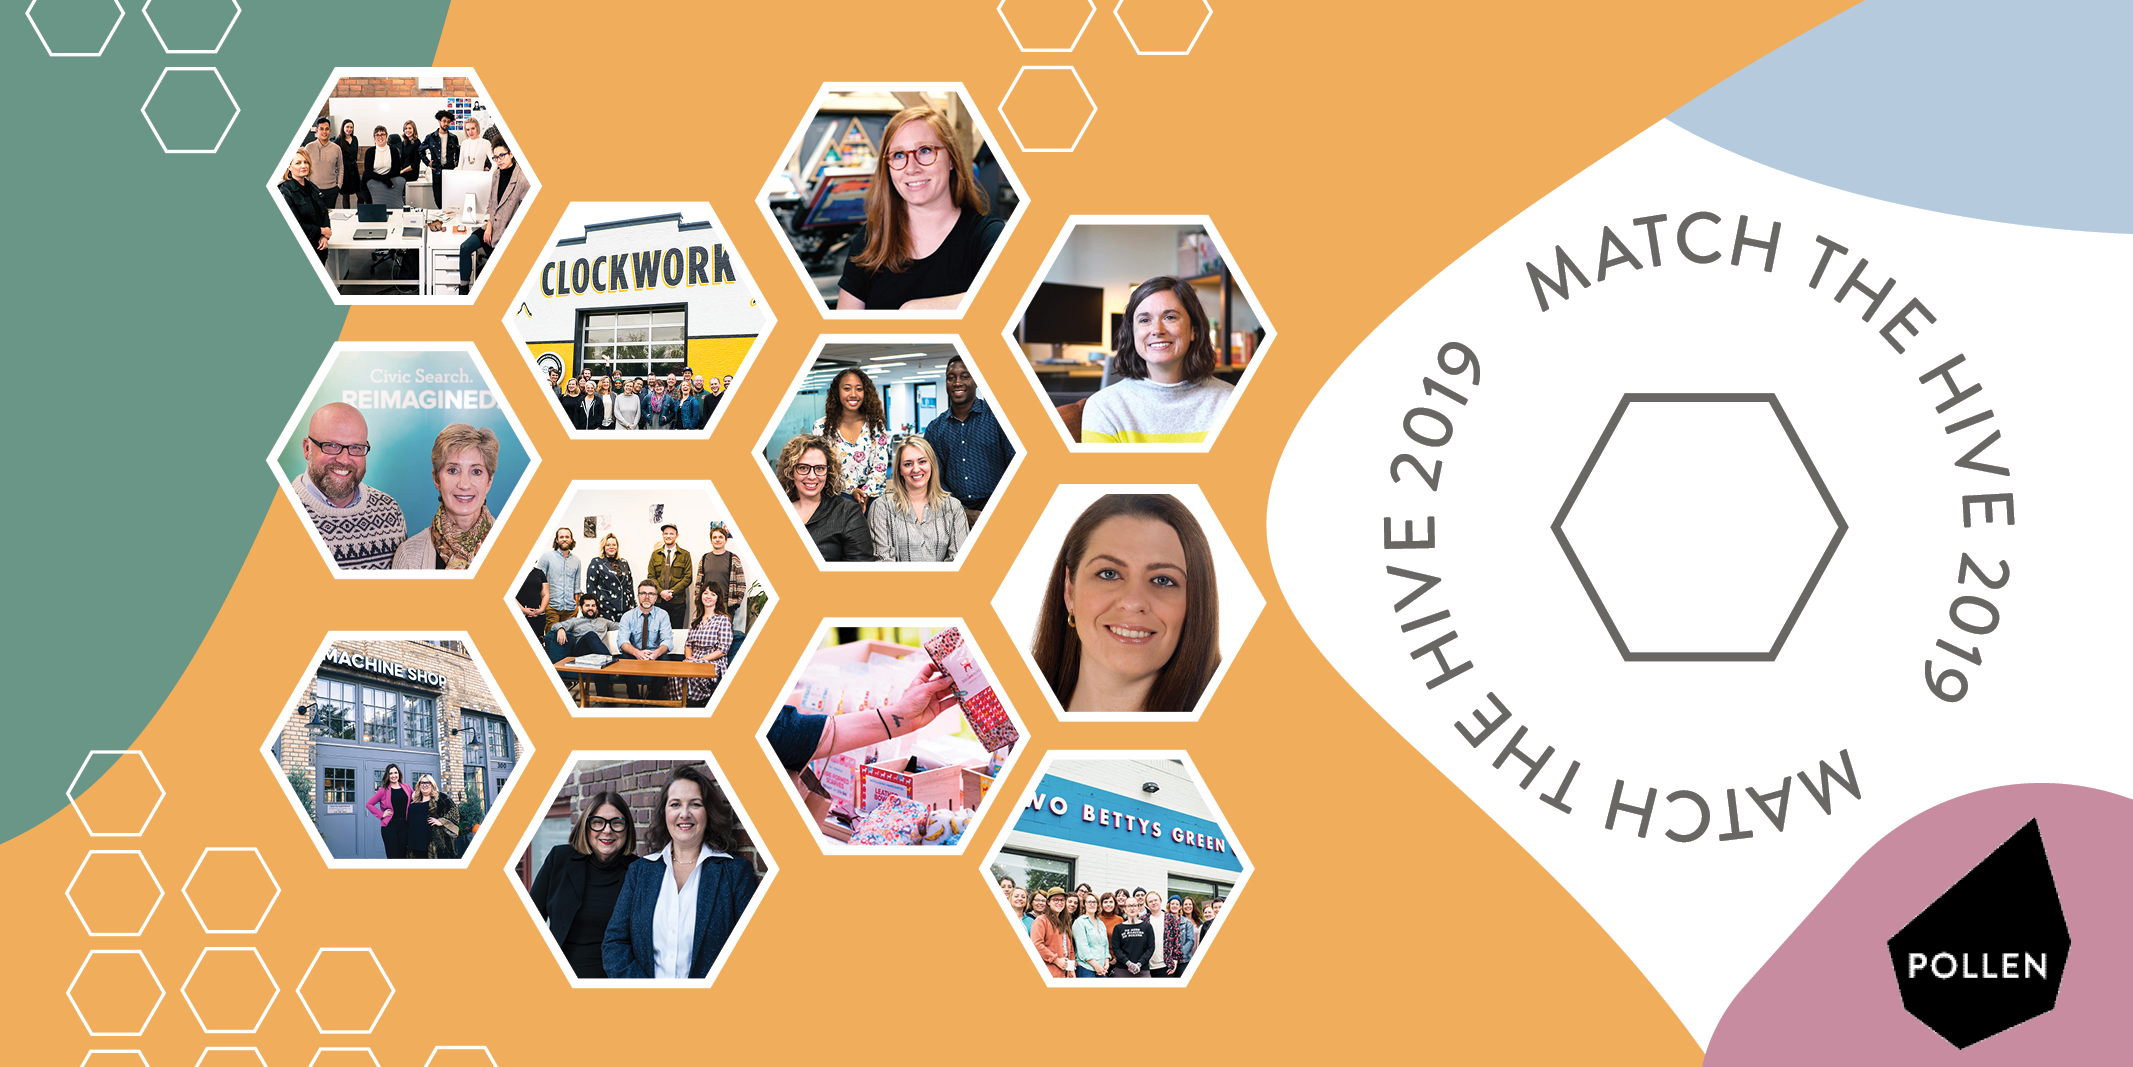 2019 Match The Hive Businesses